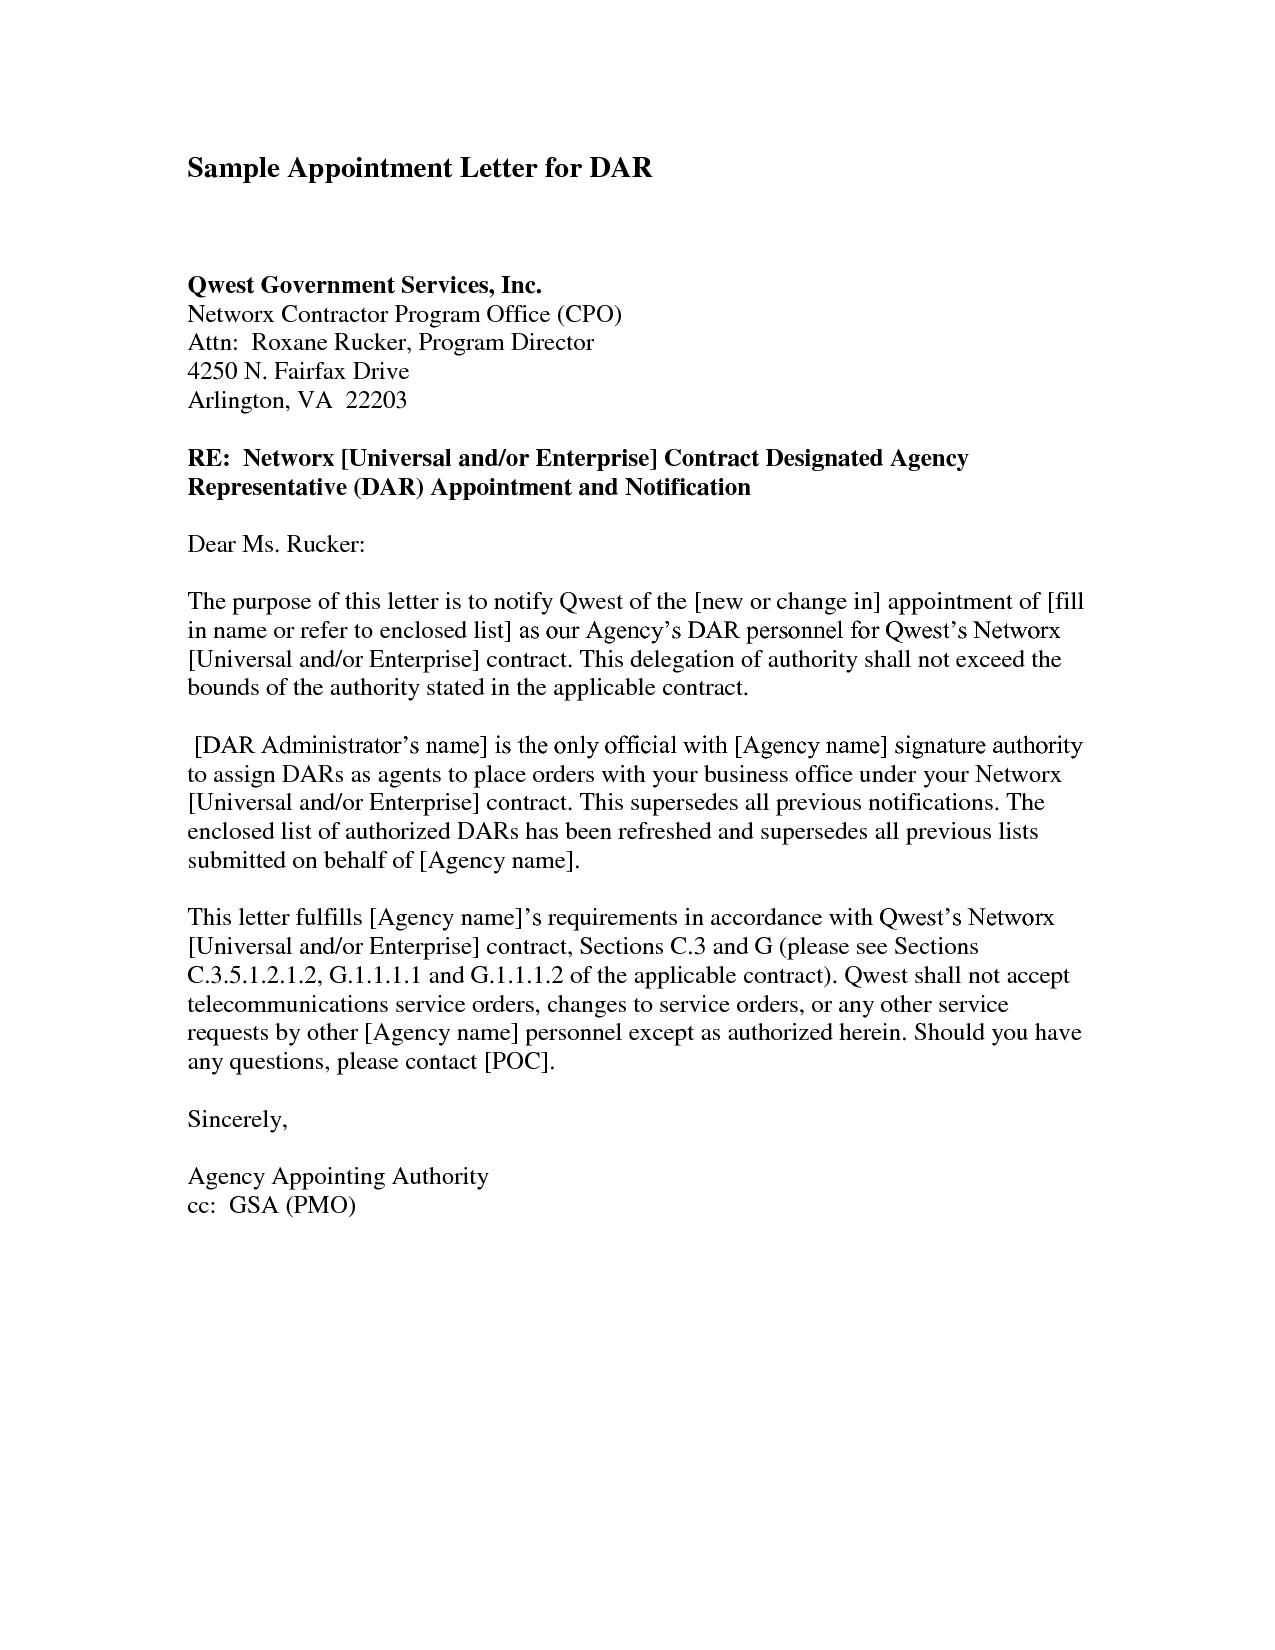 Unauthorized Tenant Letter Template - Trustee Appointment Letter Director Trustee is Appointed or